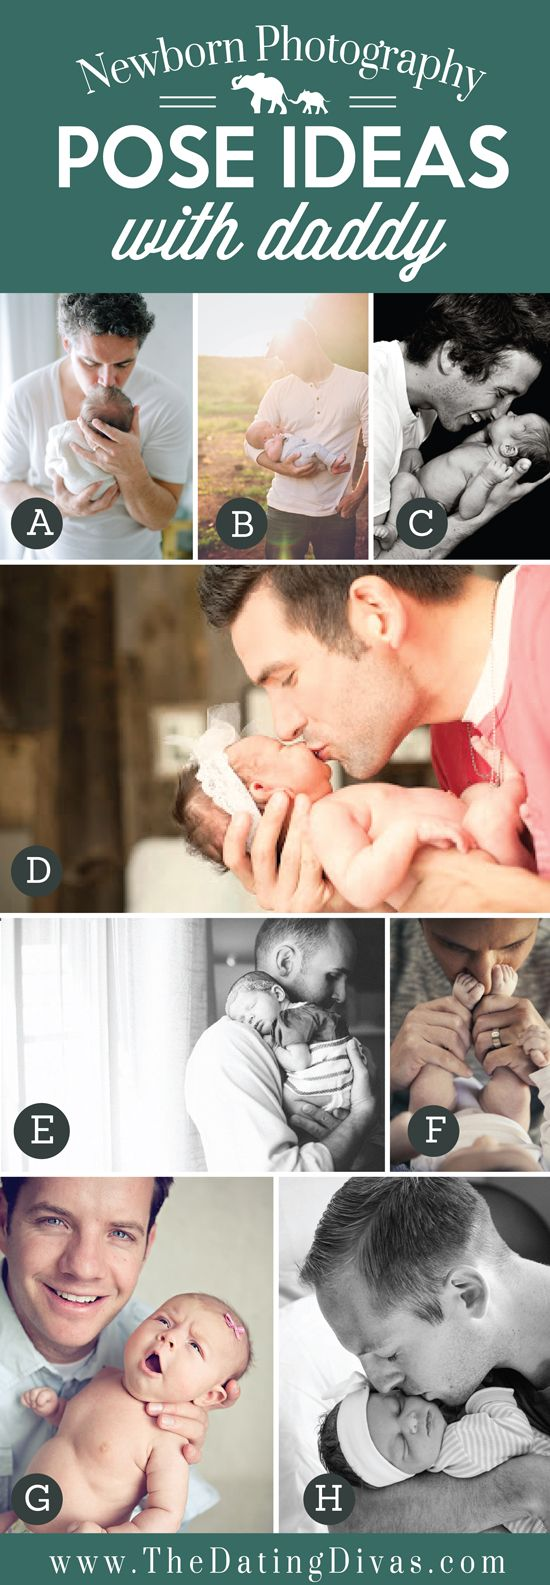 50 Tips and Ideas for Newborn Photography